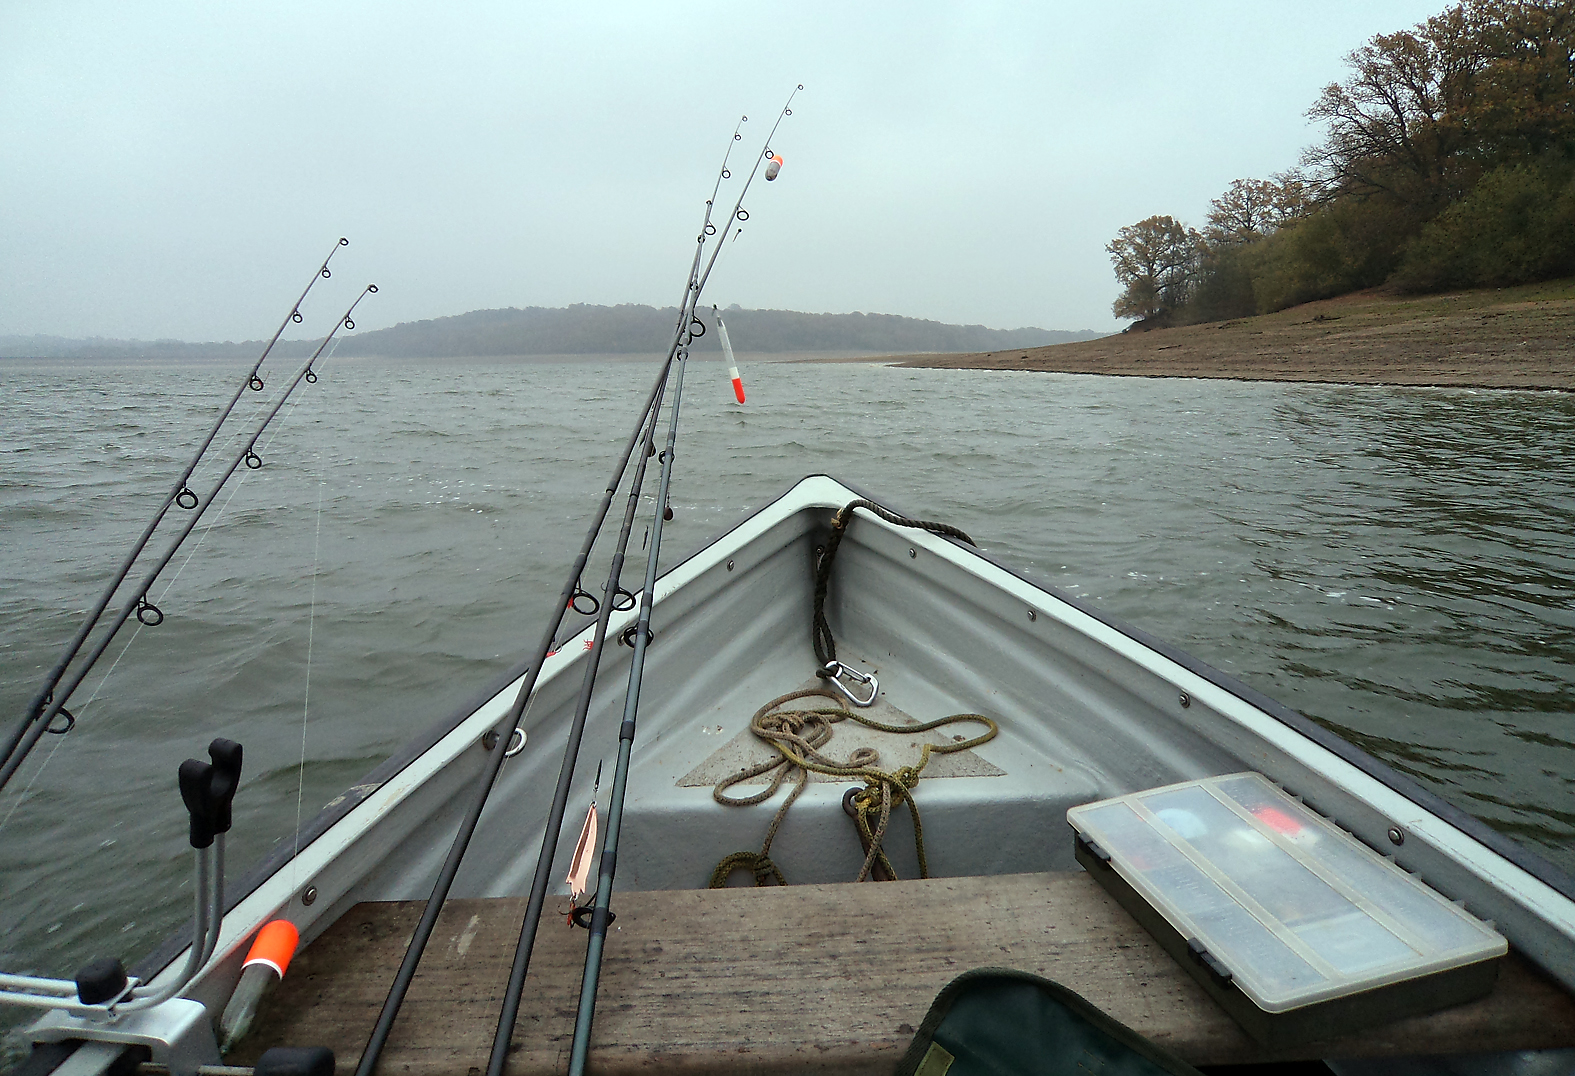 Pike fishing on Bewl Water, one of the big reservoirs, glad we had an engine